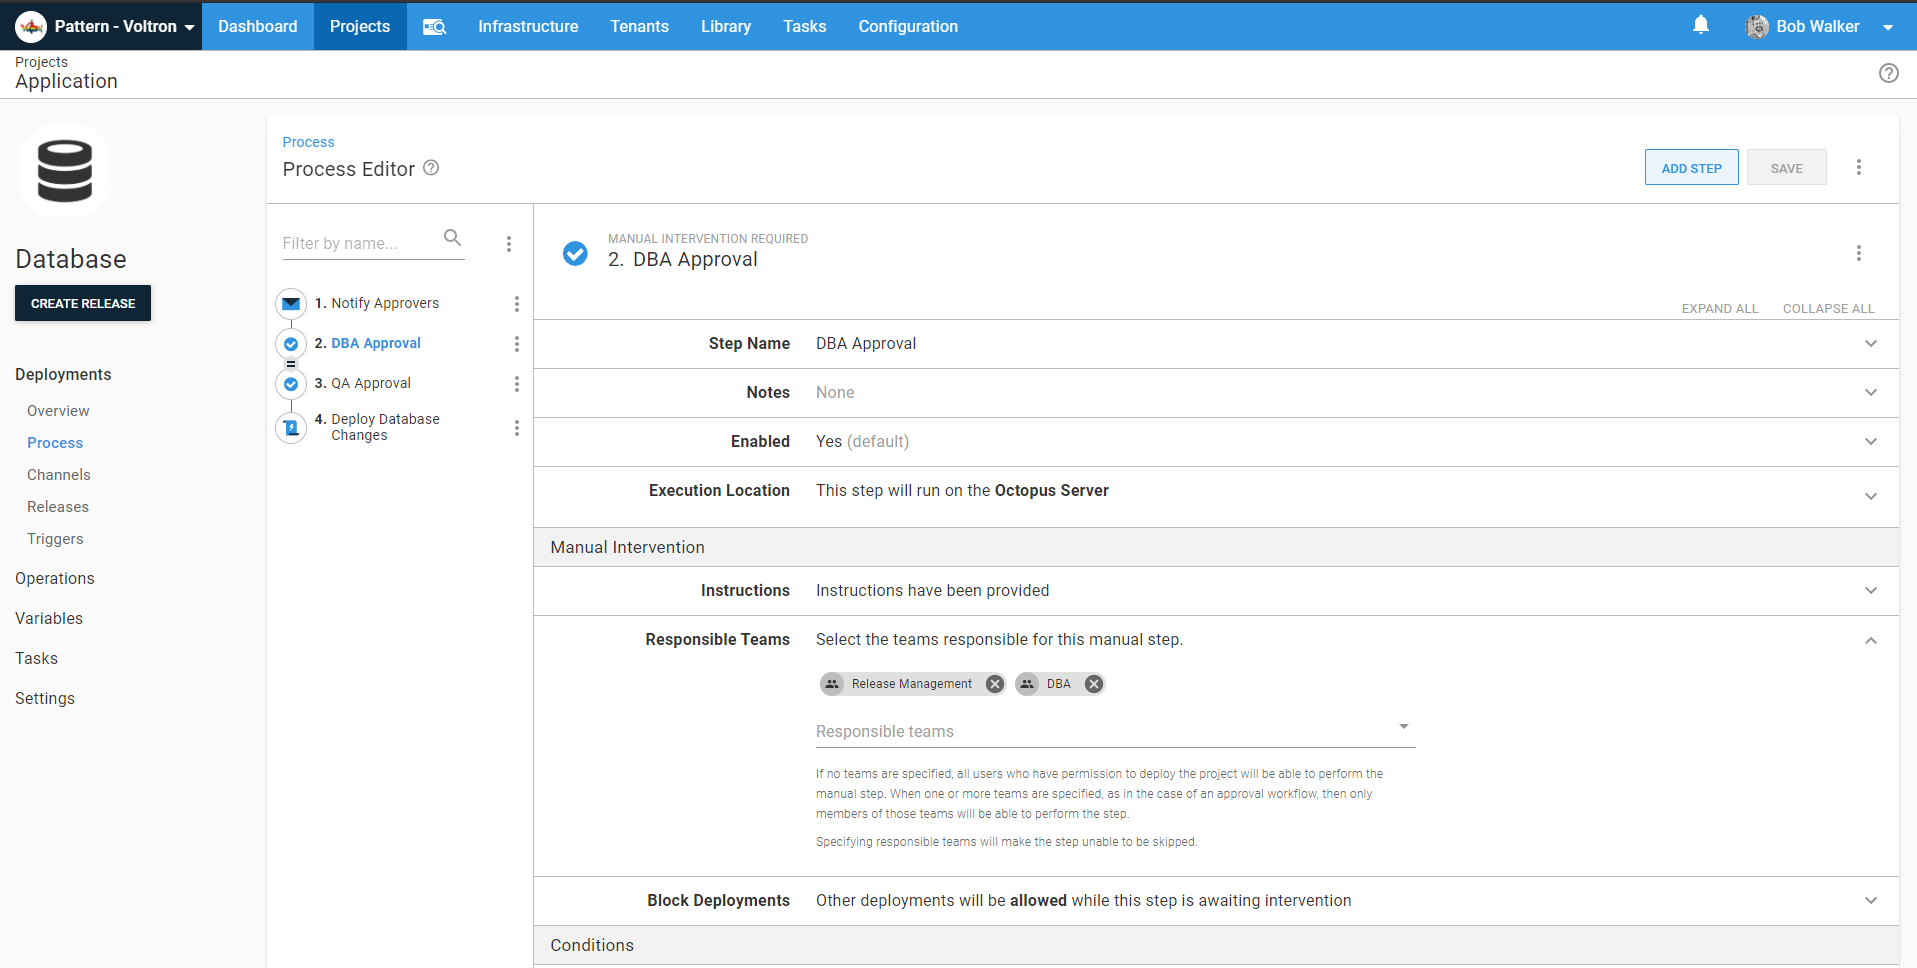 add release management team to each manual intervention